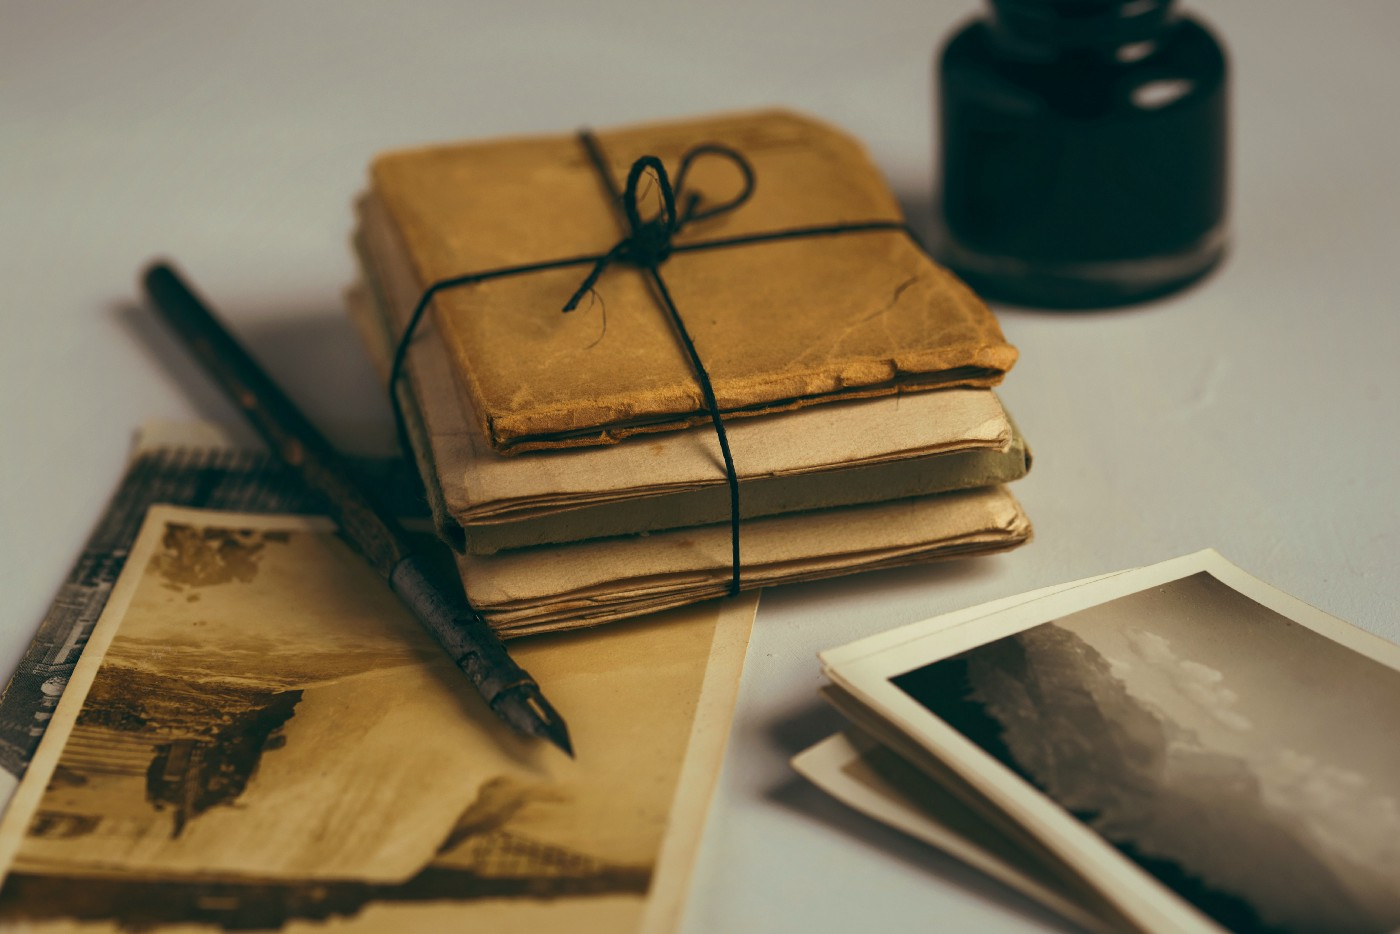 A stack of papers bound in twine with a dip pen on the left and an ink well on the right.